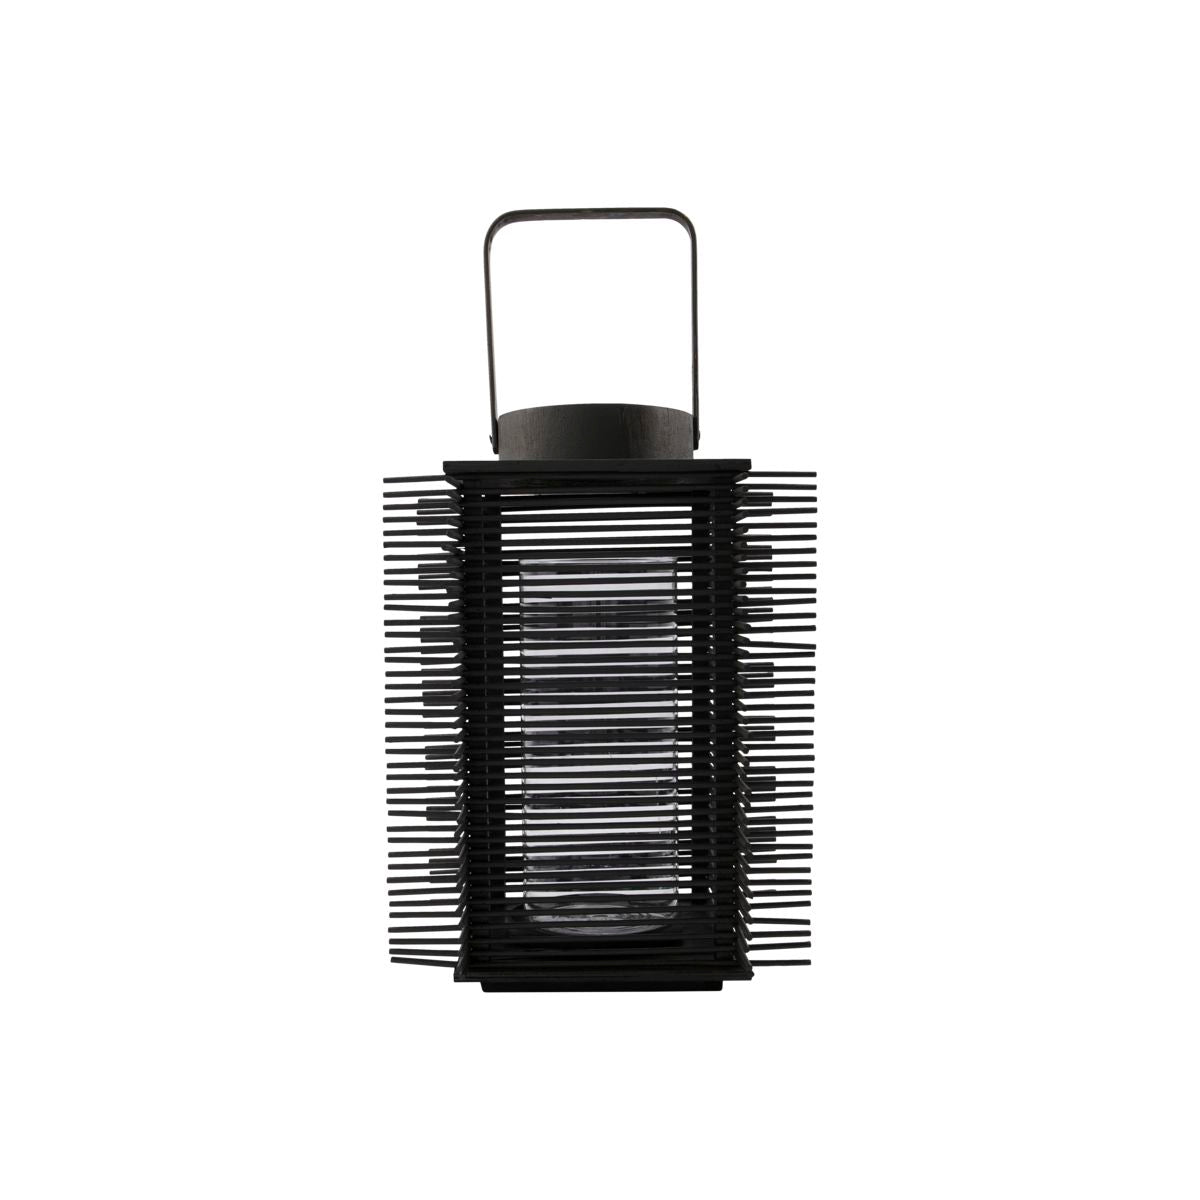 House Doctor Lantern, Asi, Dark grey